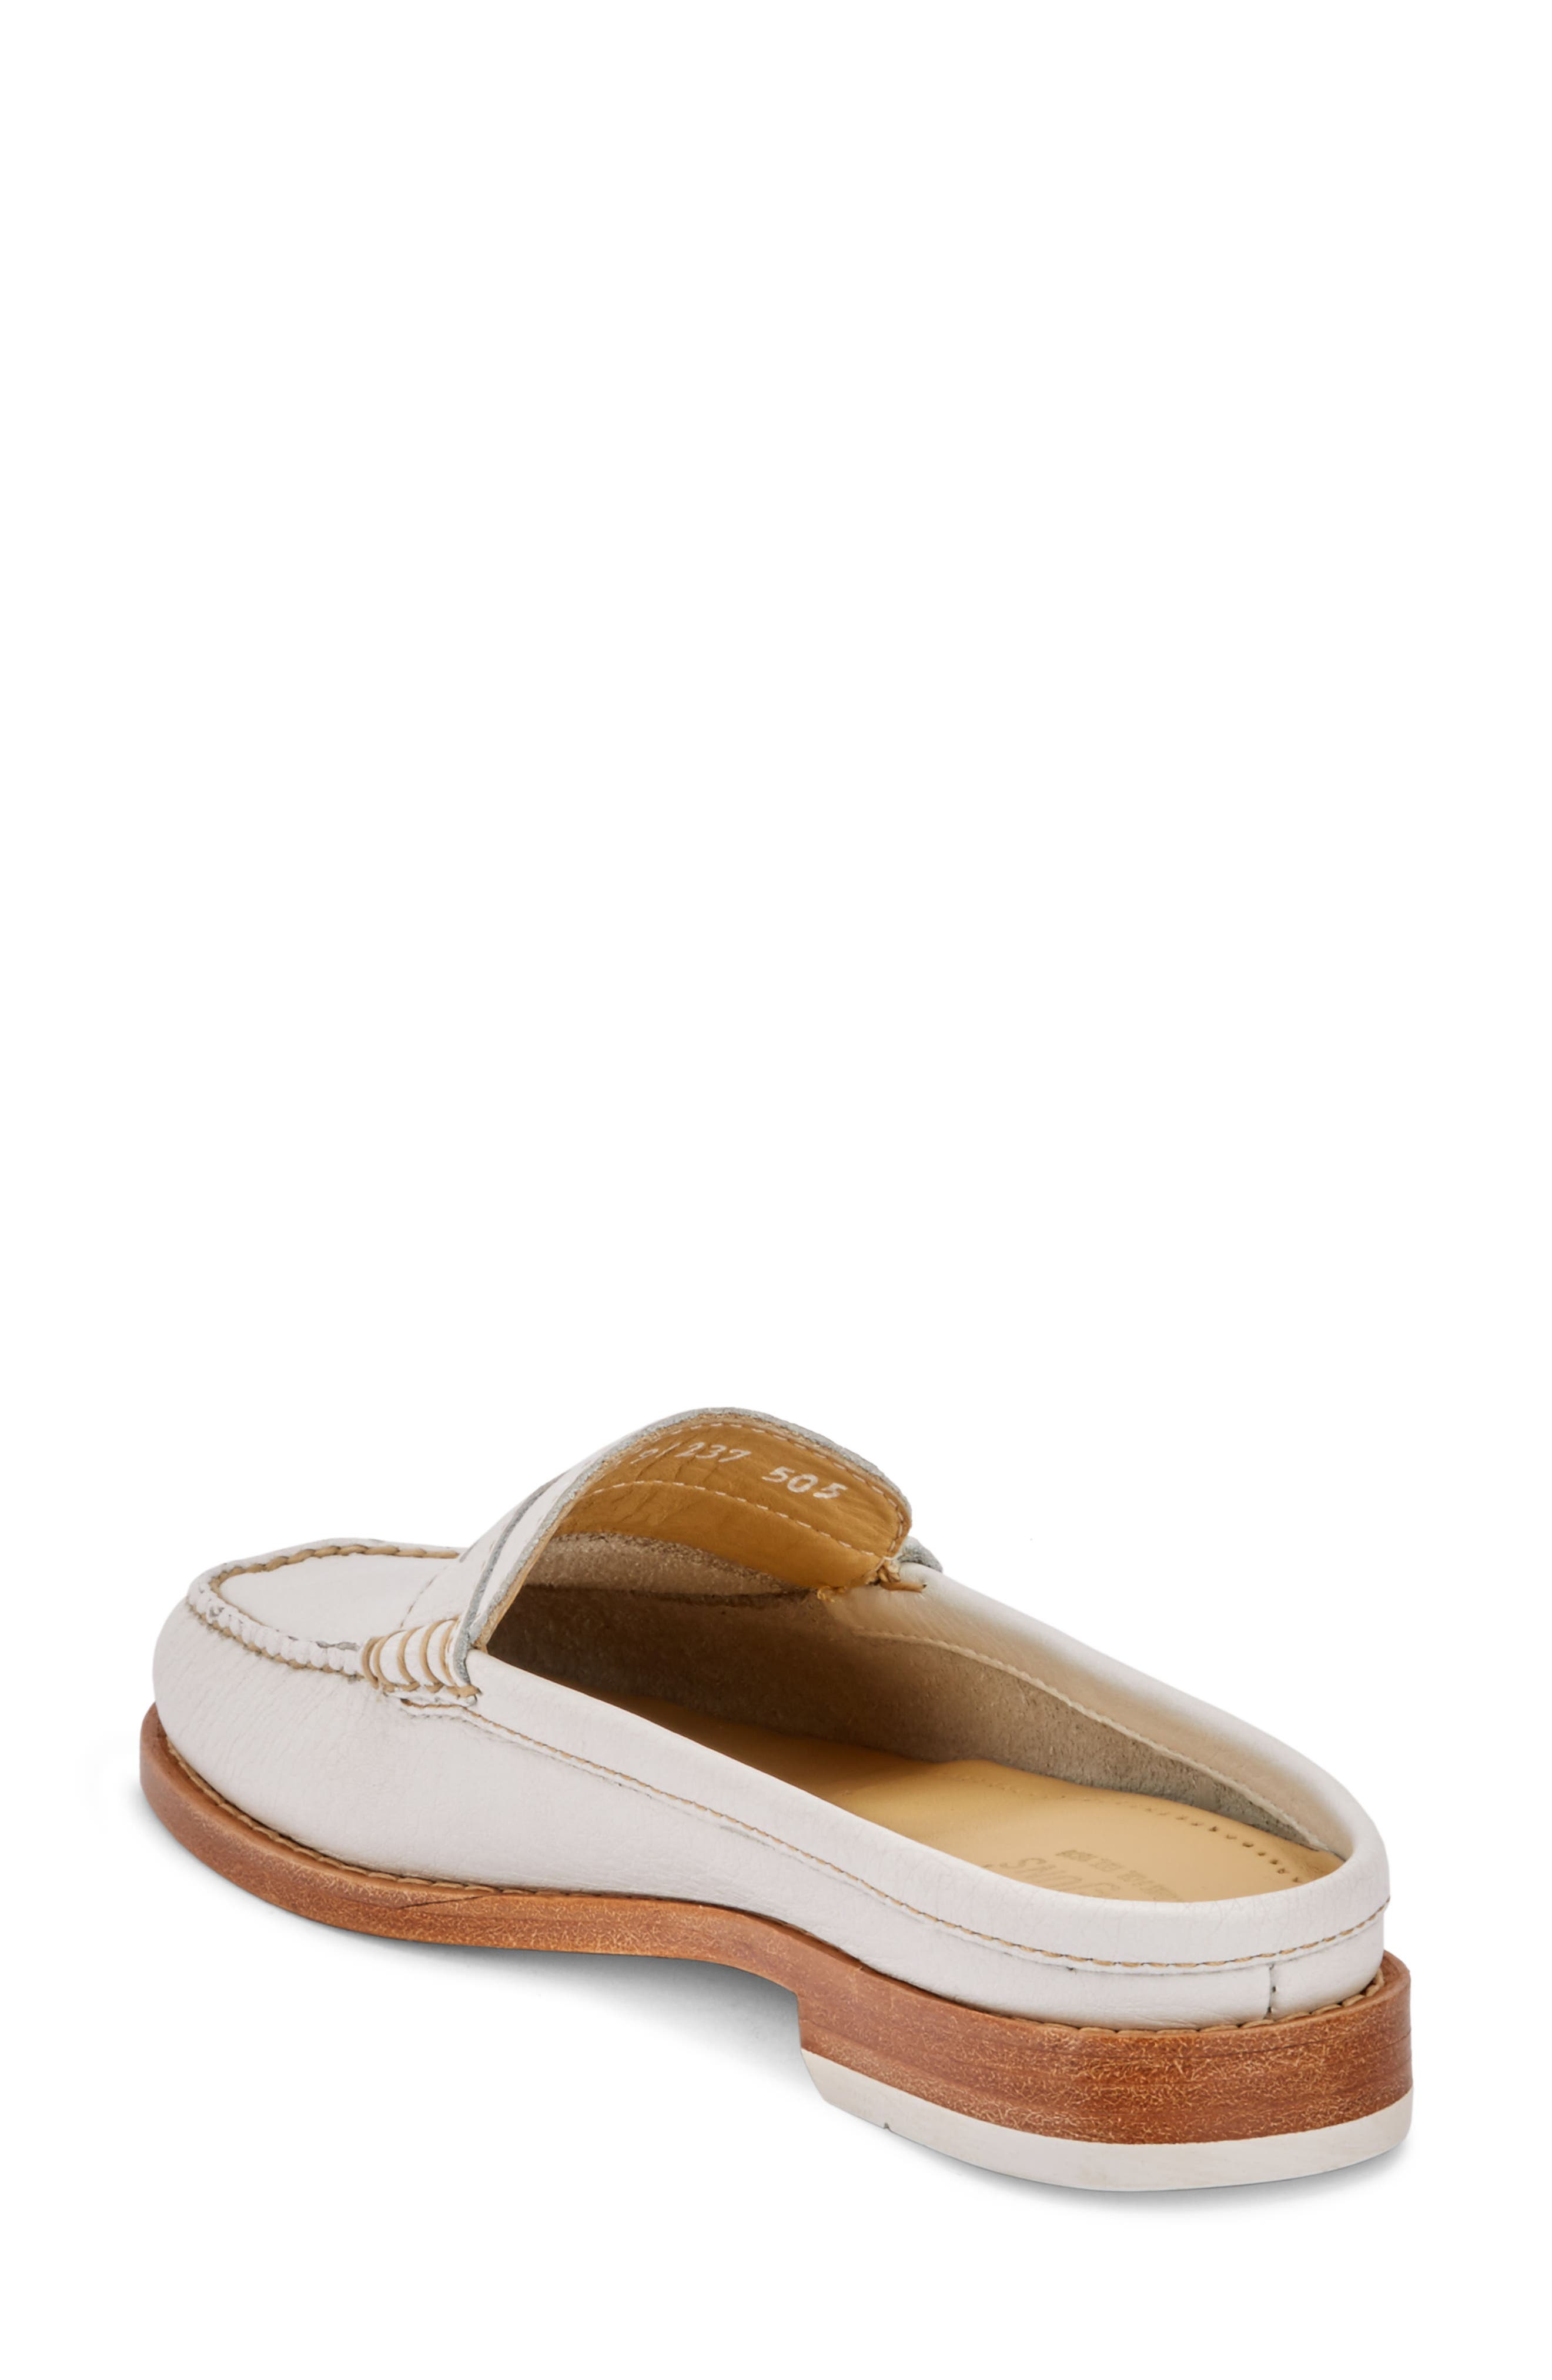 Wynn Loafer Mule,                             Alternate thumbnail 2, color,                             WHITE/ WHITE LEATHER